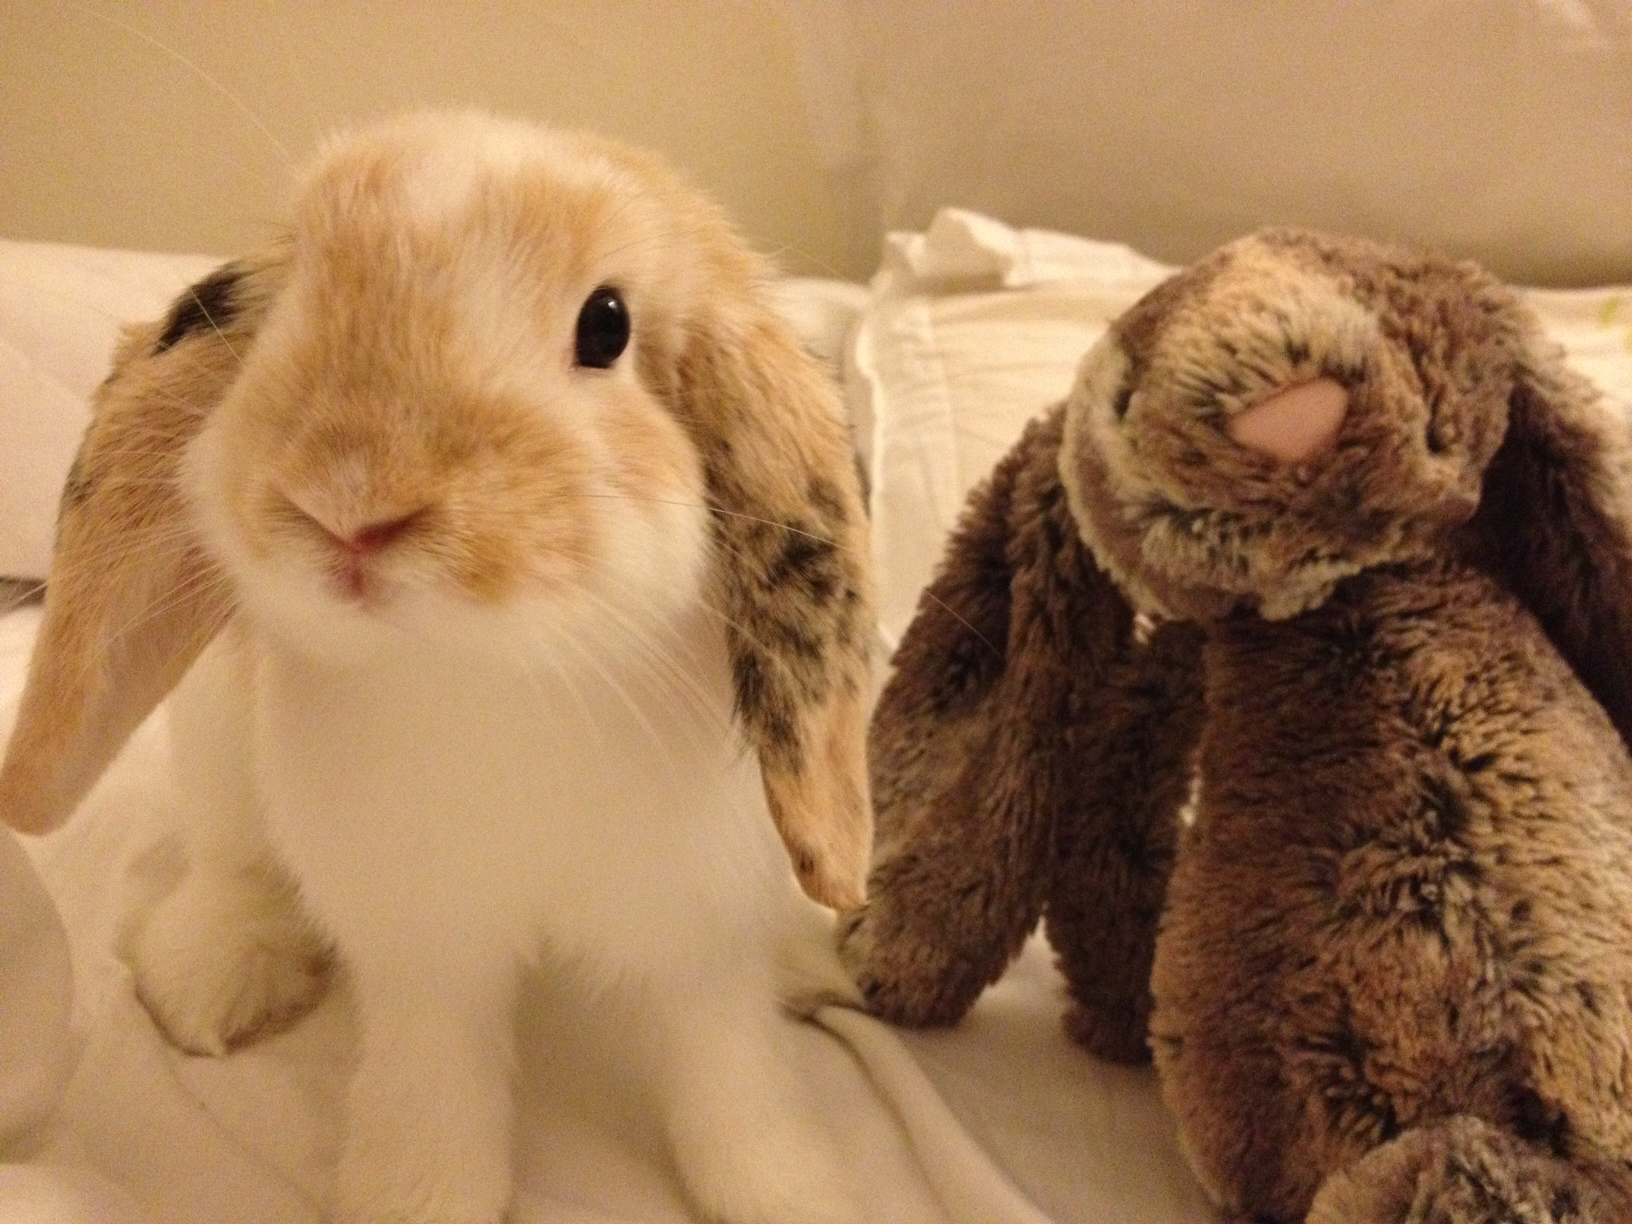 Bunny Hangs Out with Some Plush Friends 1